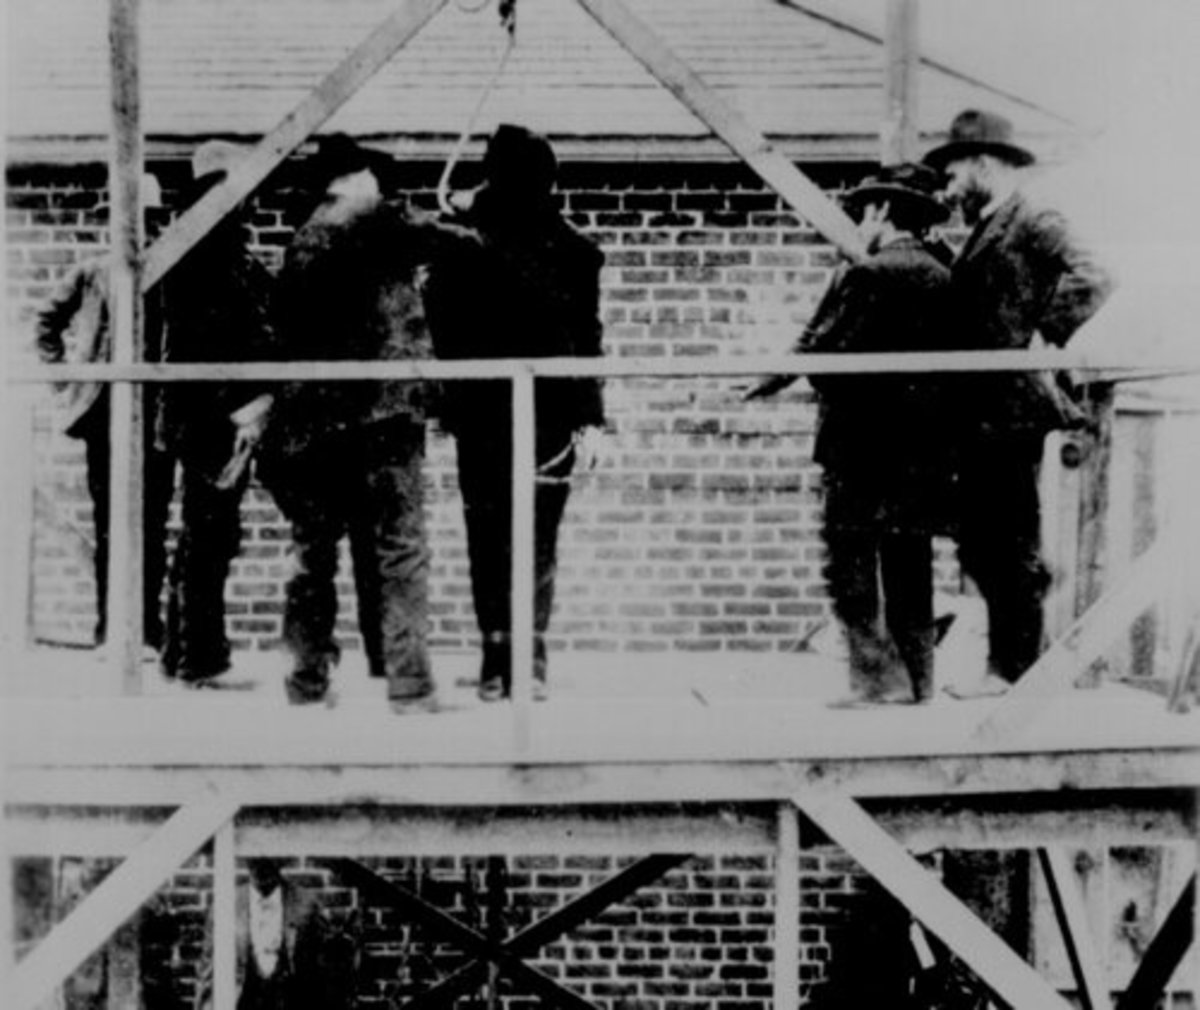 Judge Isaac Parker - The Hanging Judge: A Criminal being prepared for execution